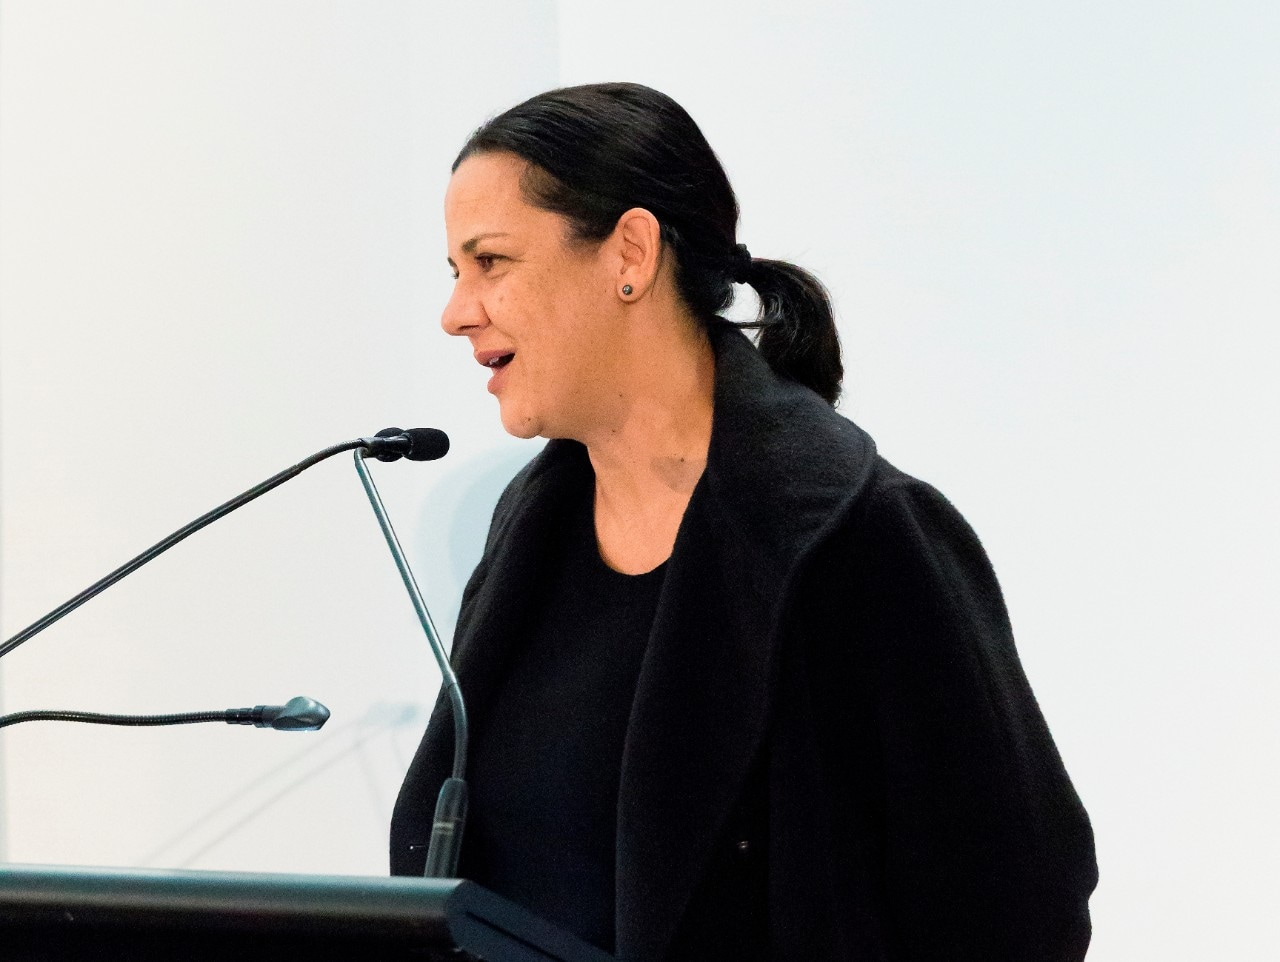 A photograph of Hetti Perkins speaking at a microphone.